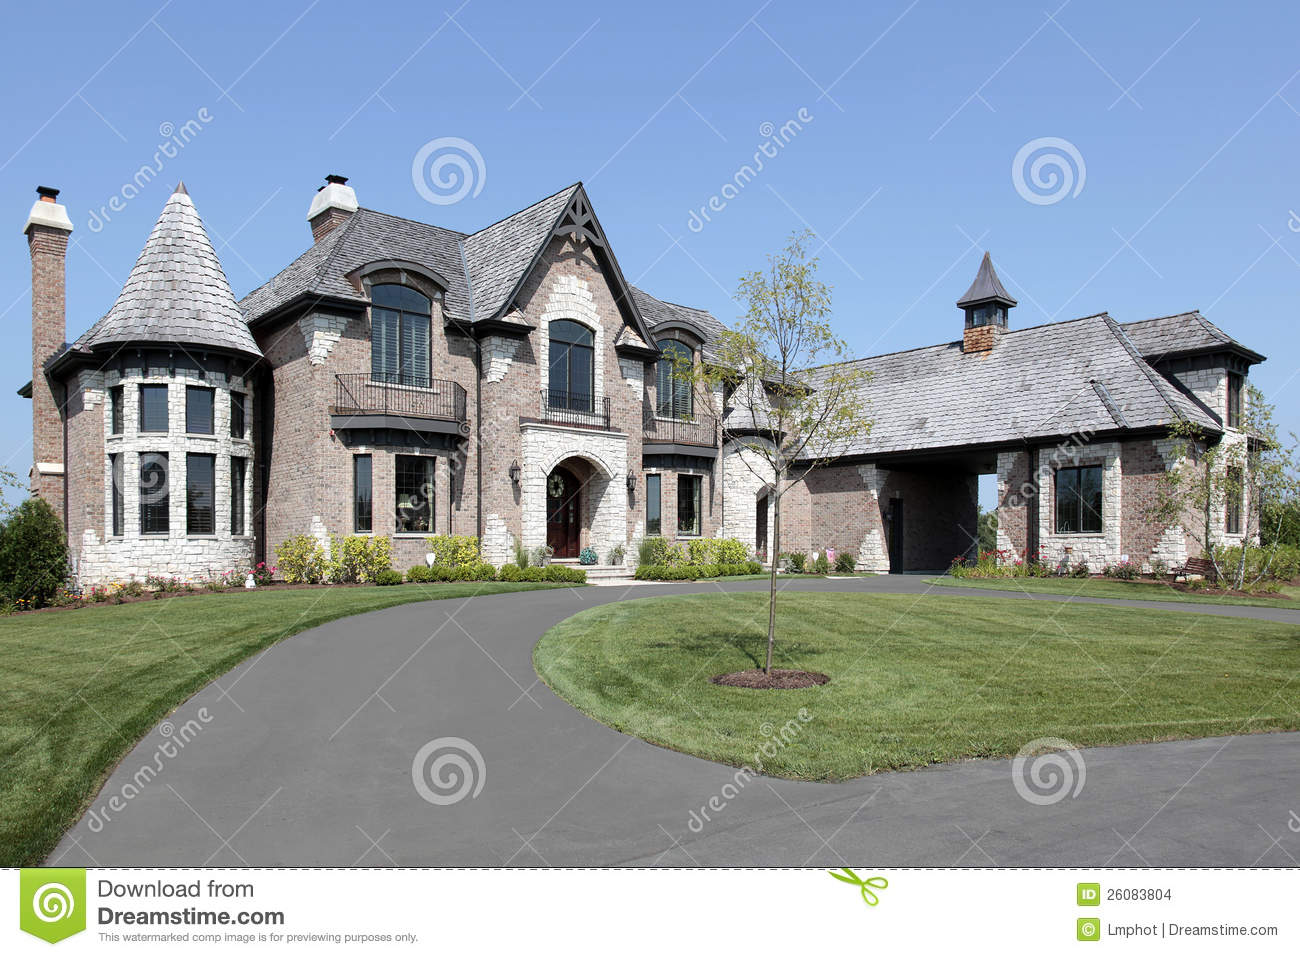 Suburban Brick Home With Circular Driveway Stock Images